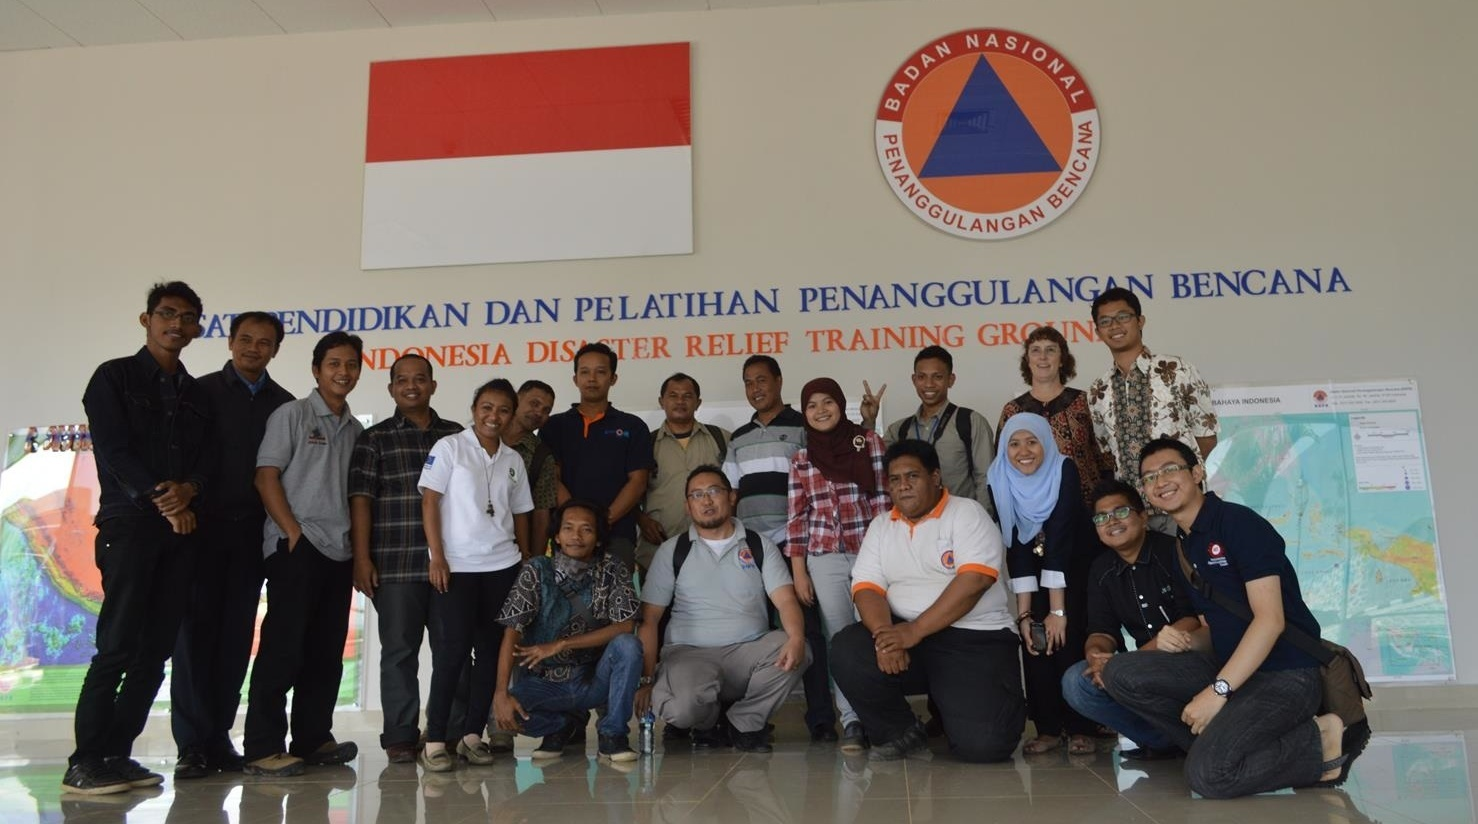 OSM/InaSAFE Trainers